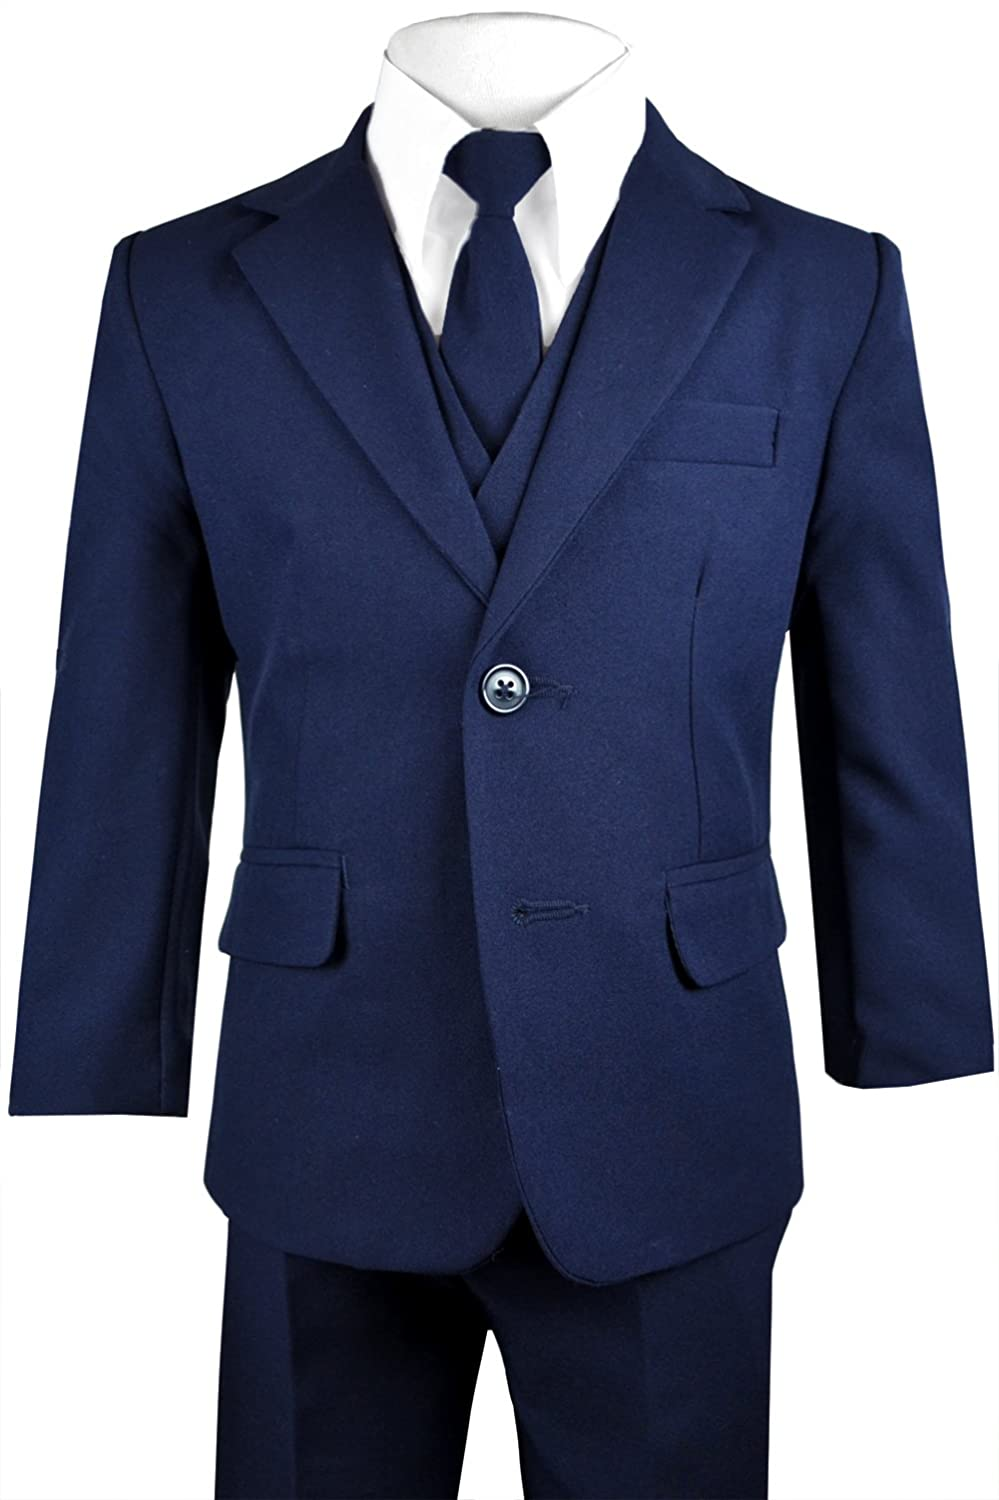 c5facf850568 Includes: Jacket, Shirt, Vest, Pants and Tie A suit jacket made of 100%  polyester material with two buttons in the front and a single vent in ...